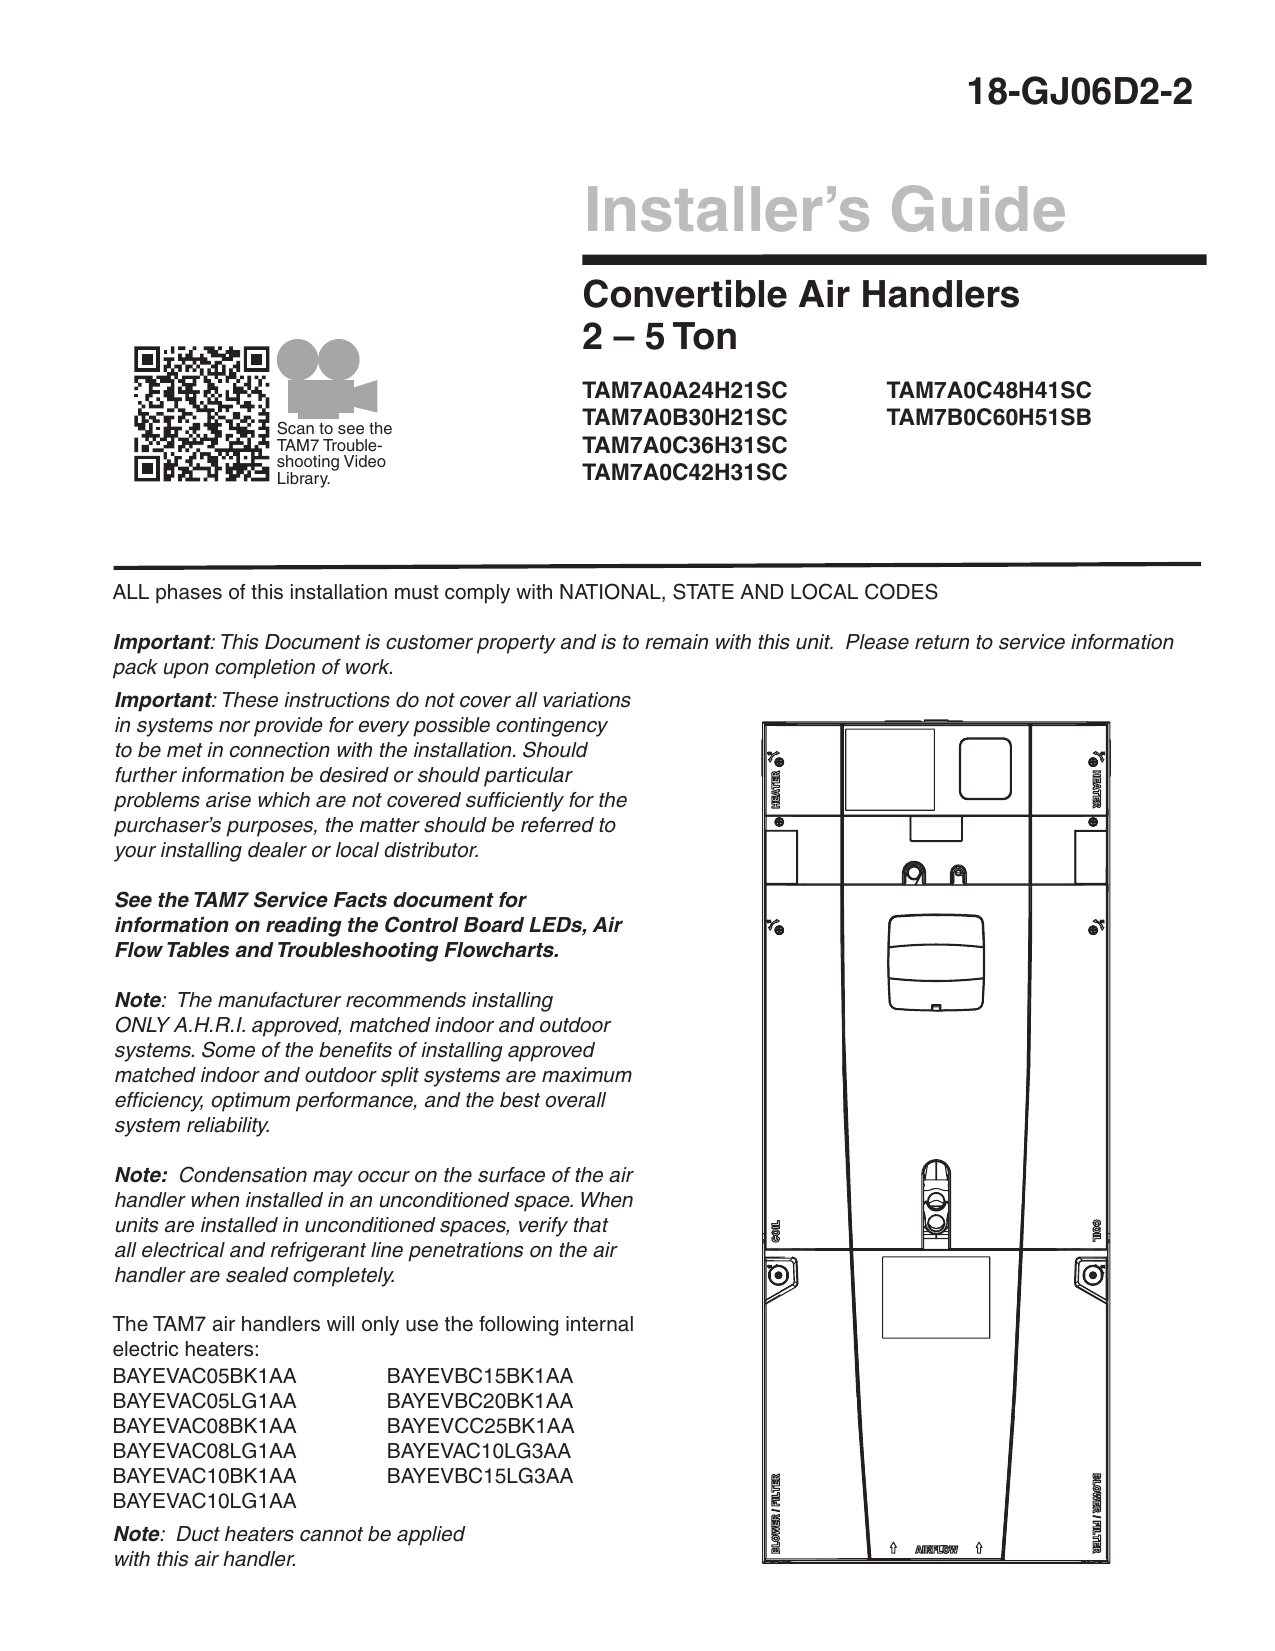 Installers Guide Convertible Air Handlers 2 - 5 Ton Tam7 | Manualzz - Nest Thermostat Trane Tam7 2 Stage Wiring Diagram